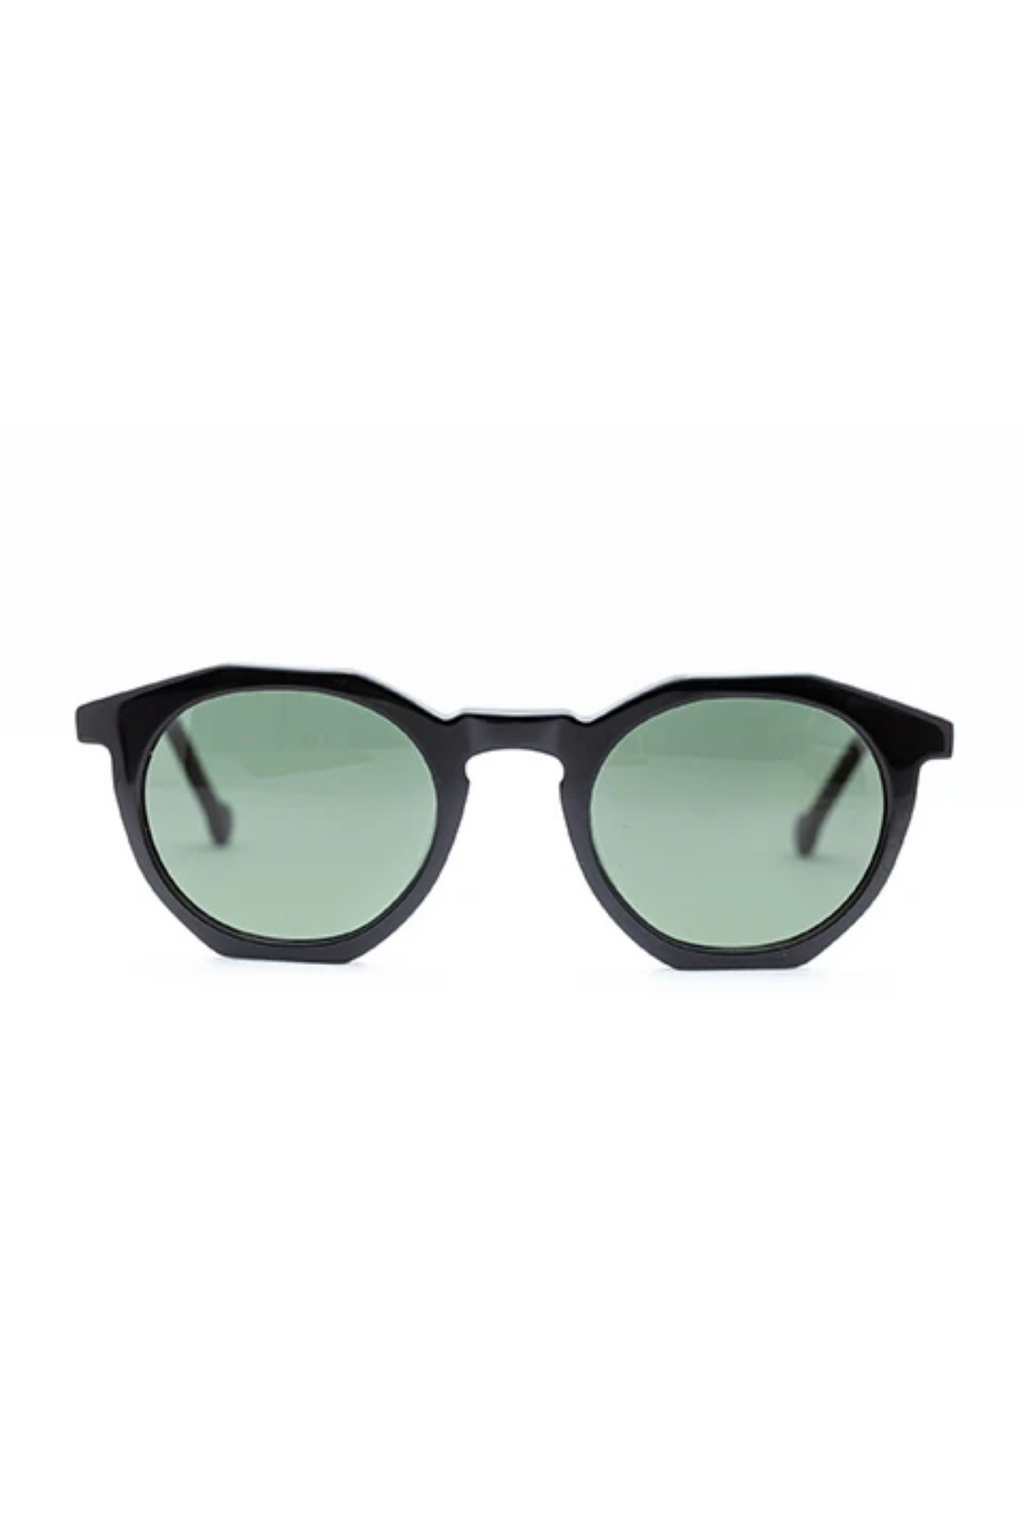 Age Eyewear - Cage Black Polarised